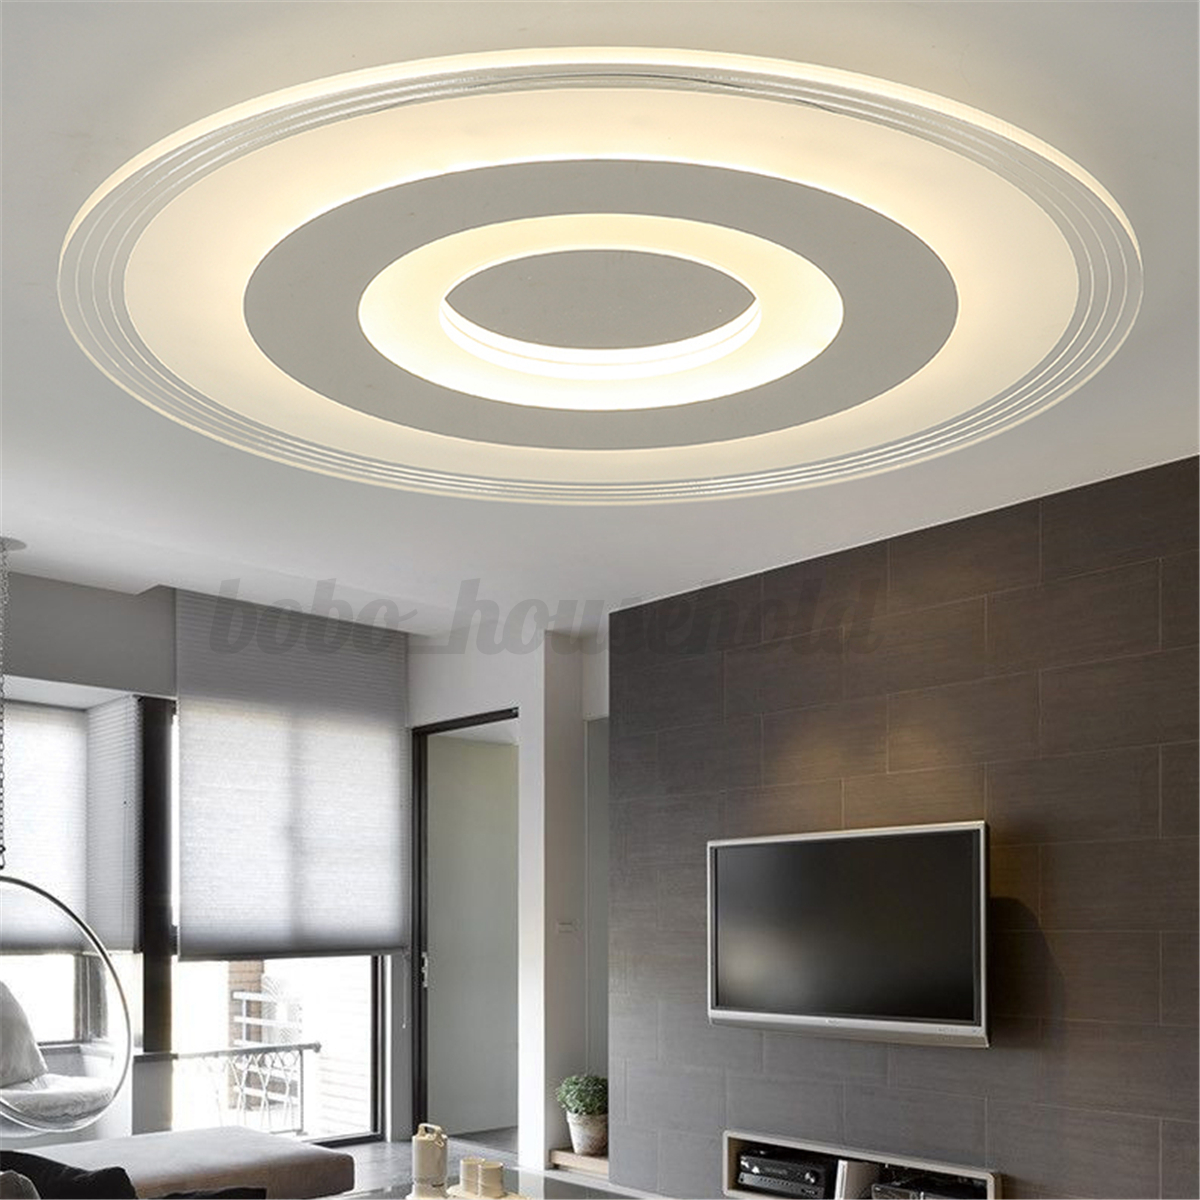 large round 15 19 inch ceiling light mounted fixture home living room lighting ebay. Black Bedroom Furniture Sets. Home Design Ideas